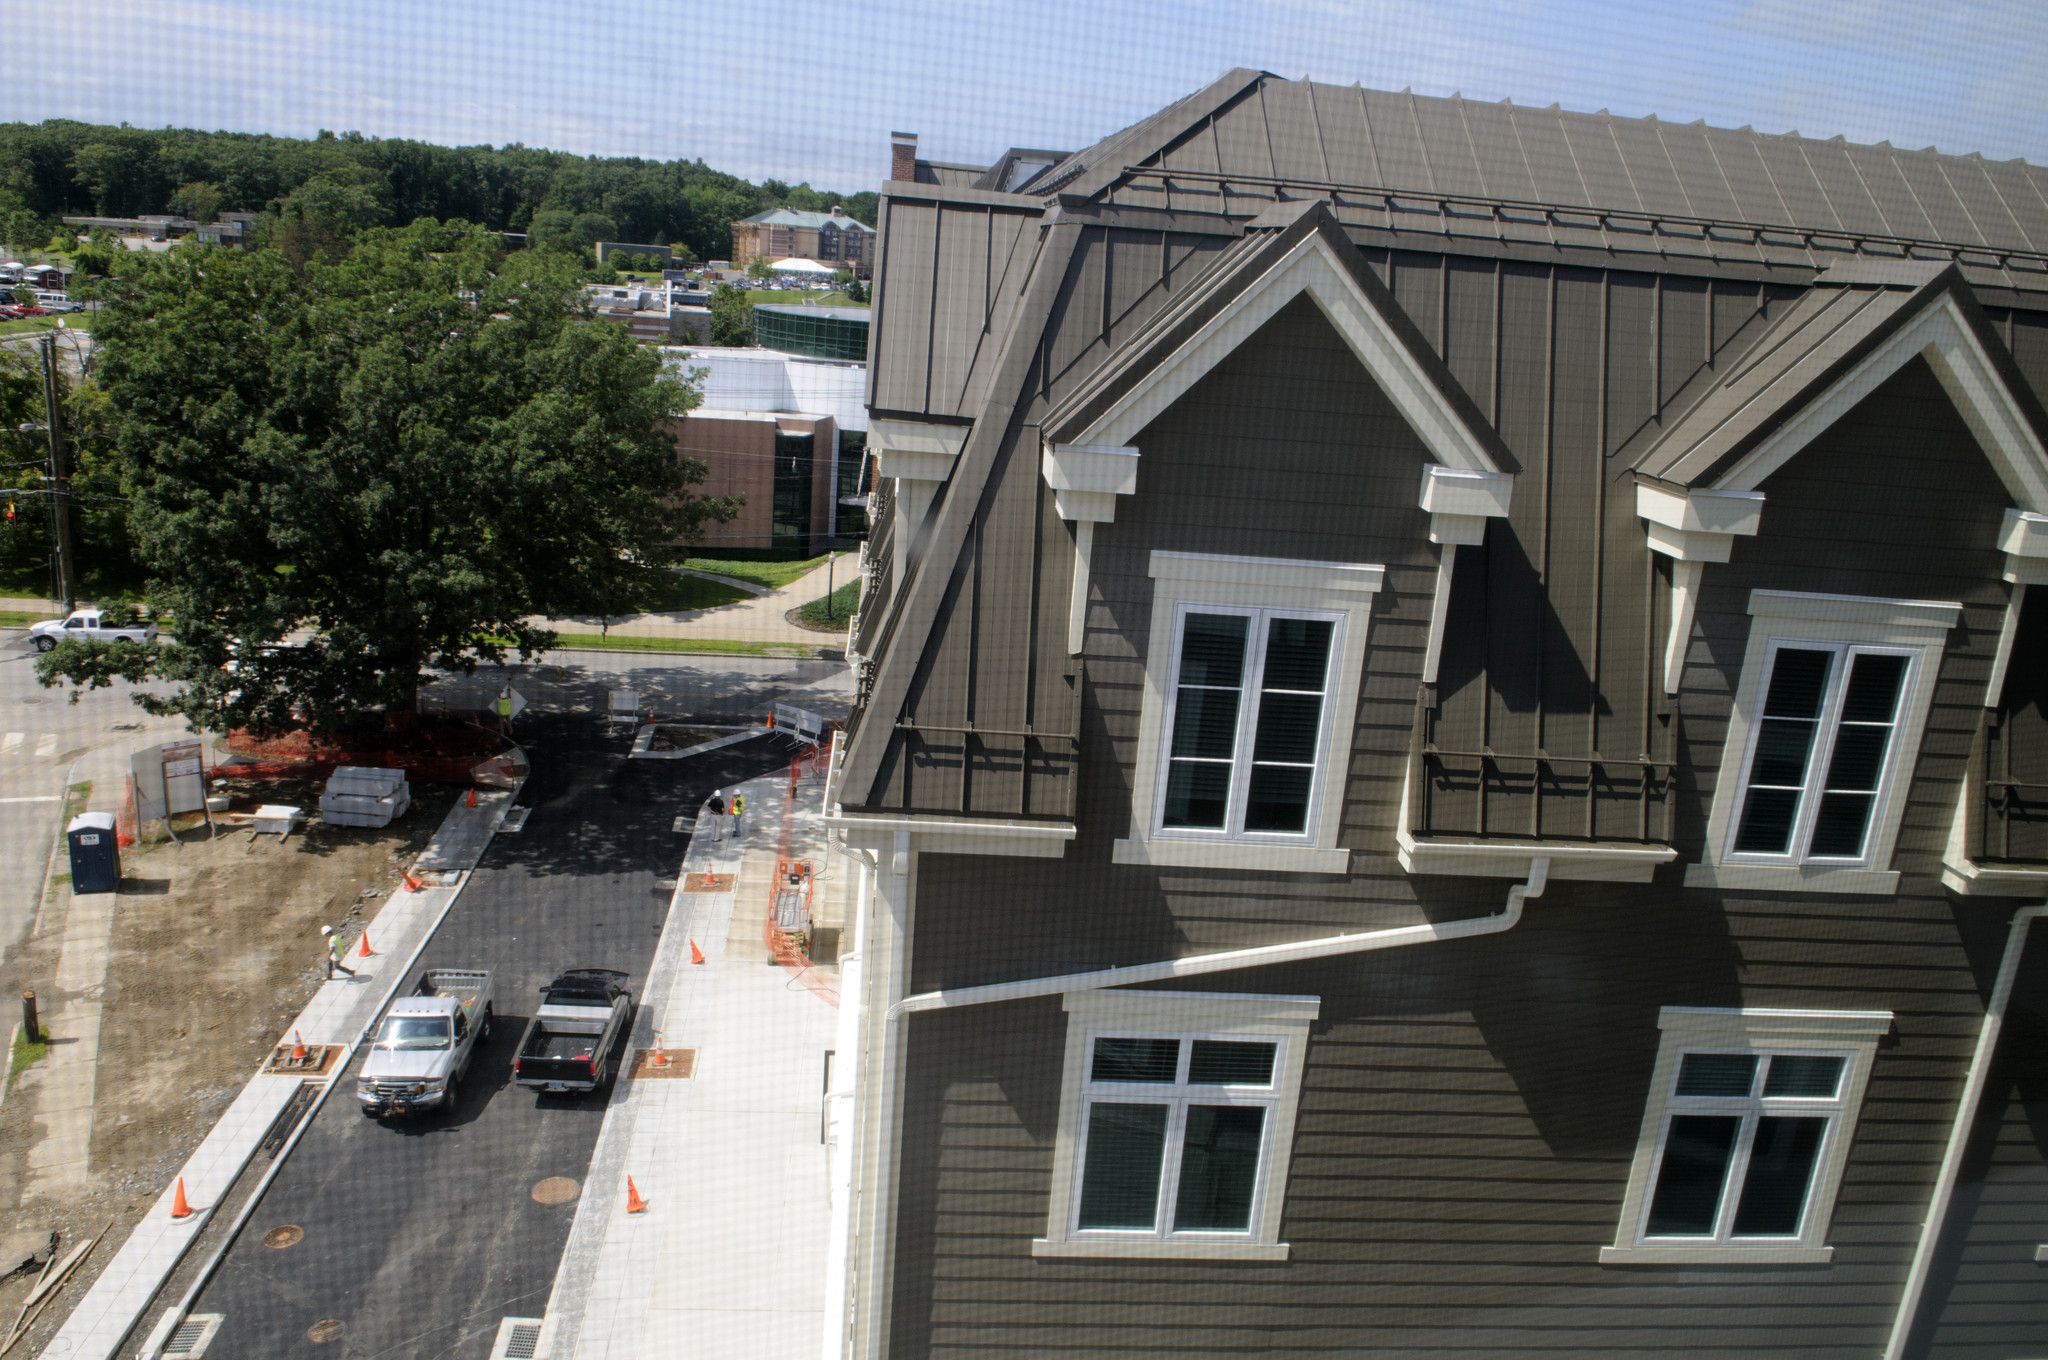 230 Tenants Delayed From Moving Into Storrs Apartments Courant